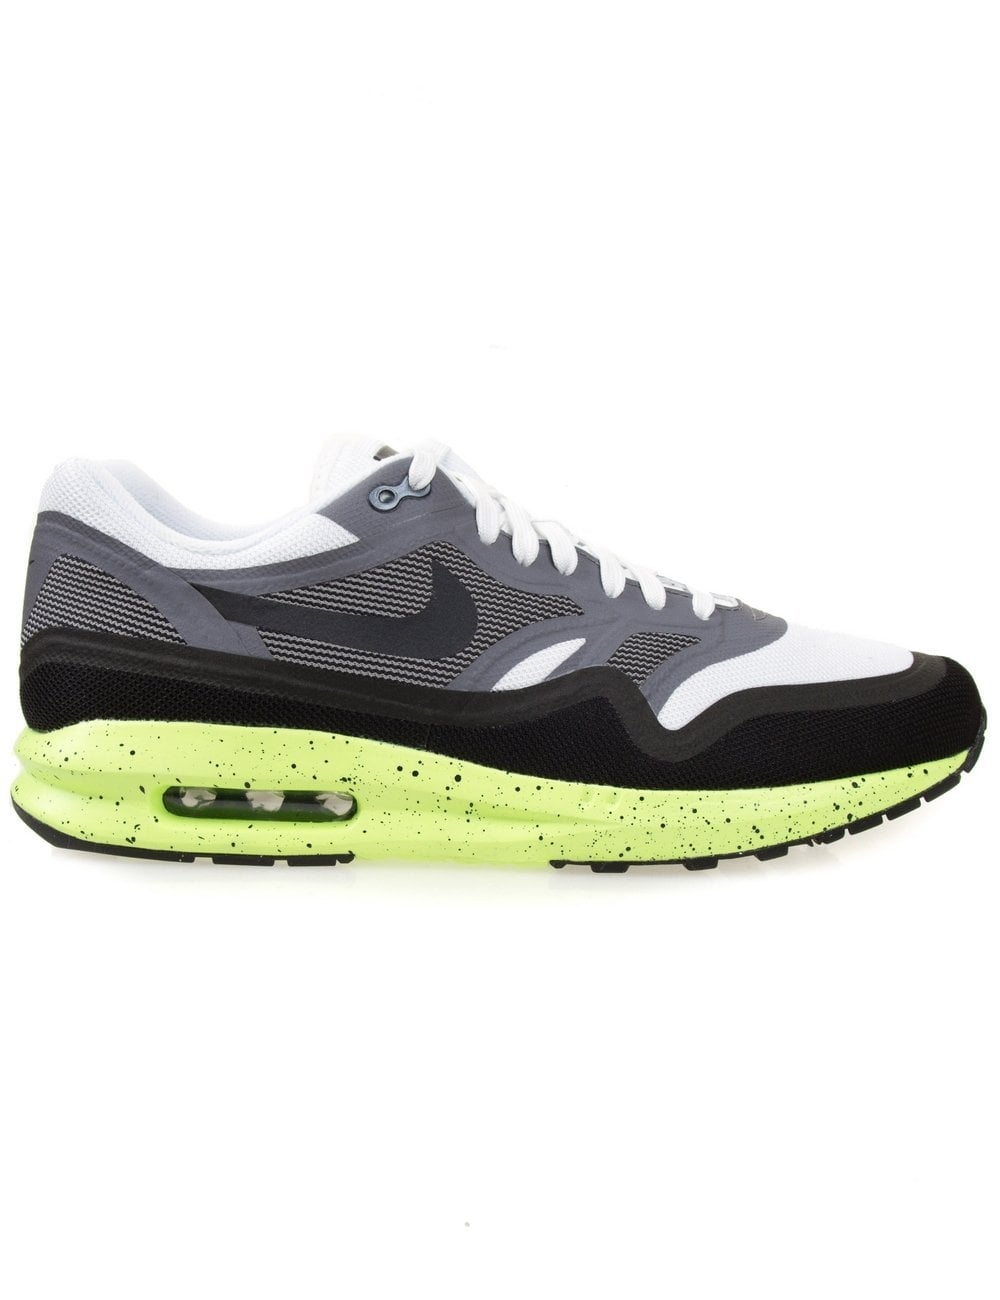 Air Max 1 Lunar - White/Black